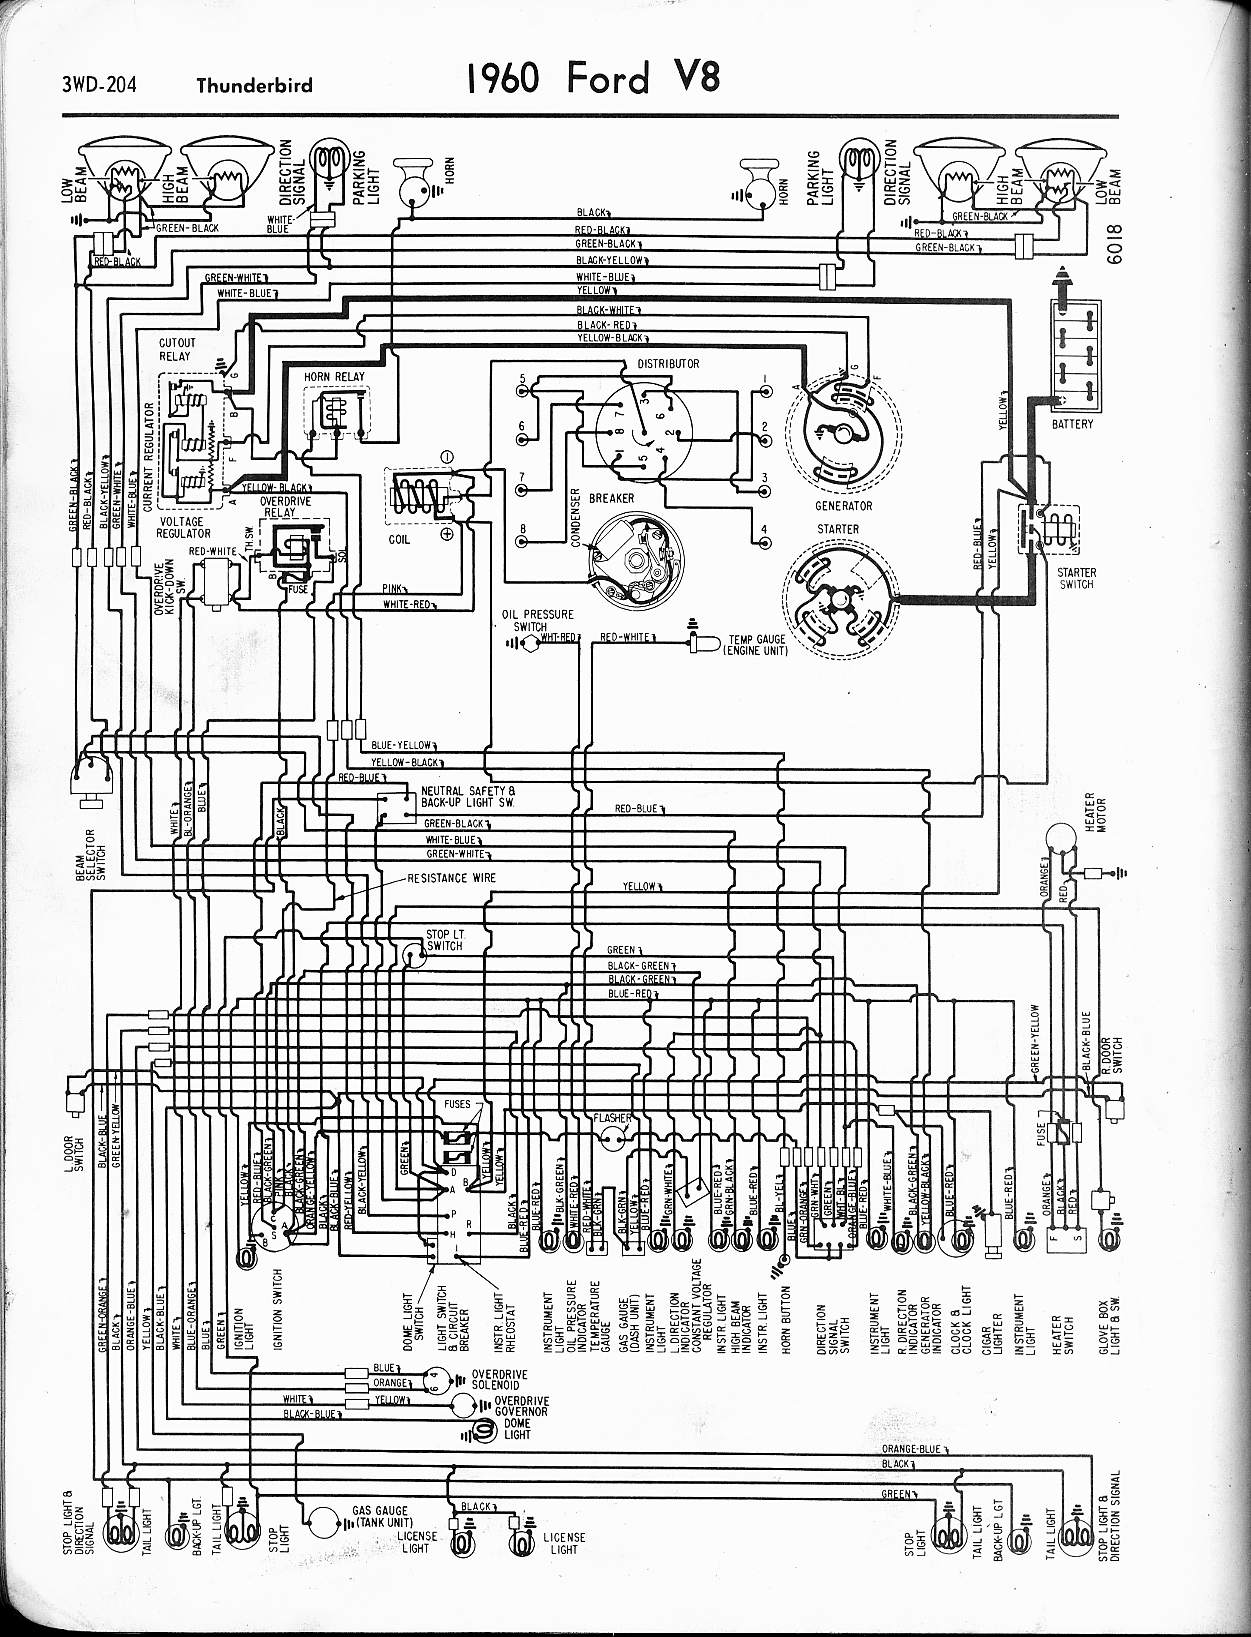 57 65 ford wiring diagrams 1978 Ford Truck Wiring Diagram 1960 thunderbird